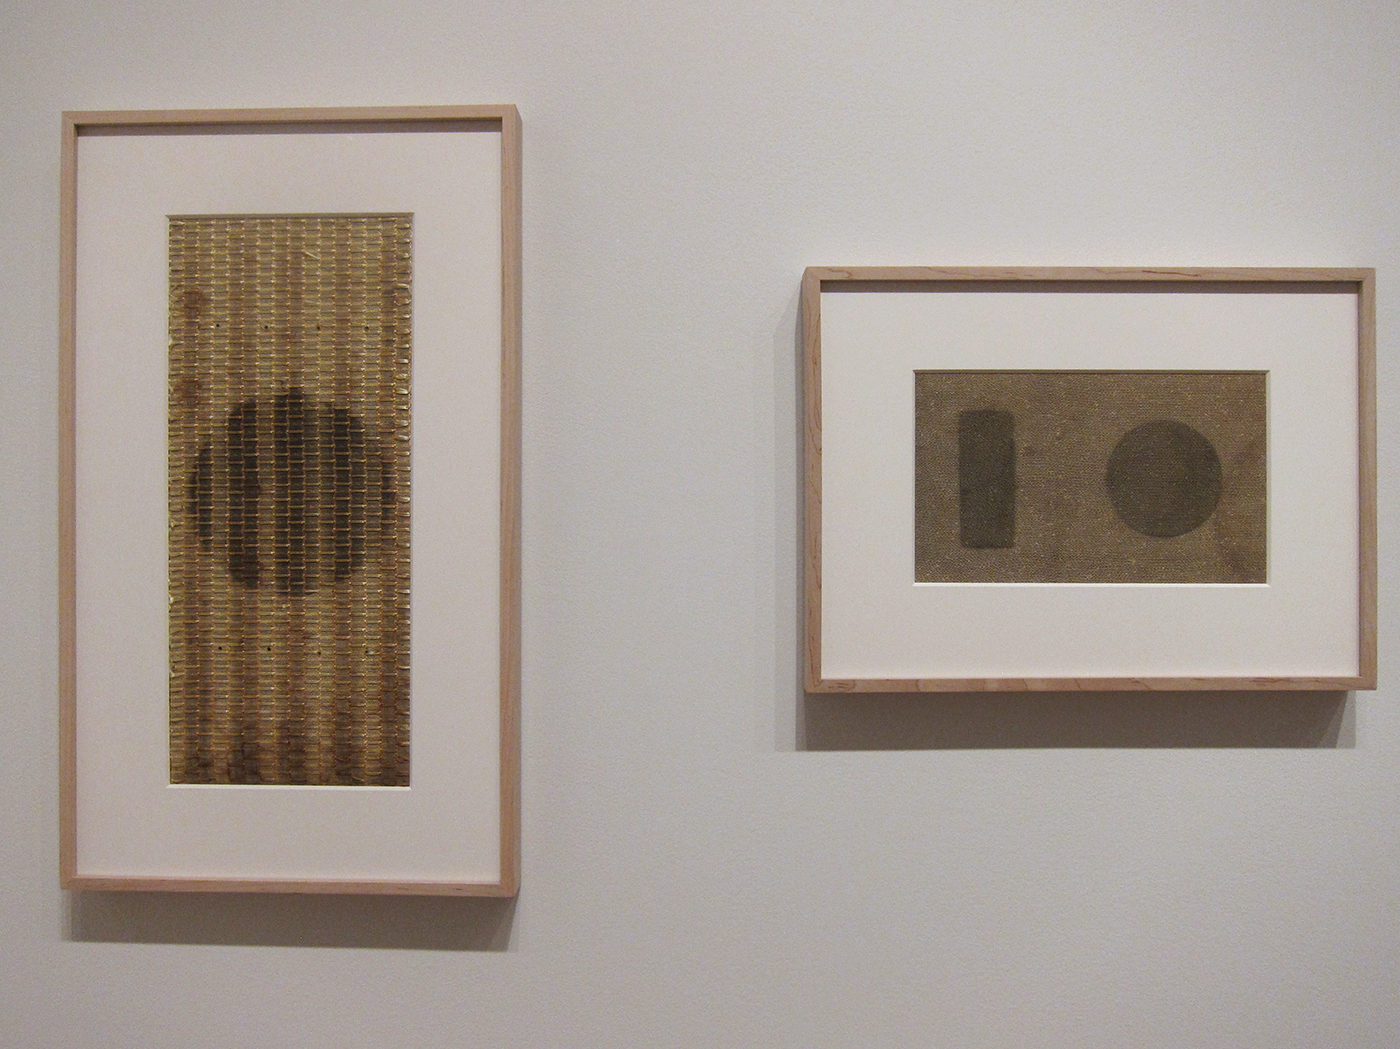 Detail of 'Gabriel de la Mora: Sound Inscriptions on Fabric' at the Drawing Center (photo by Claire Voon/Hyperallergic)